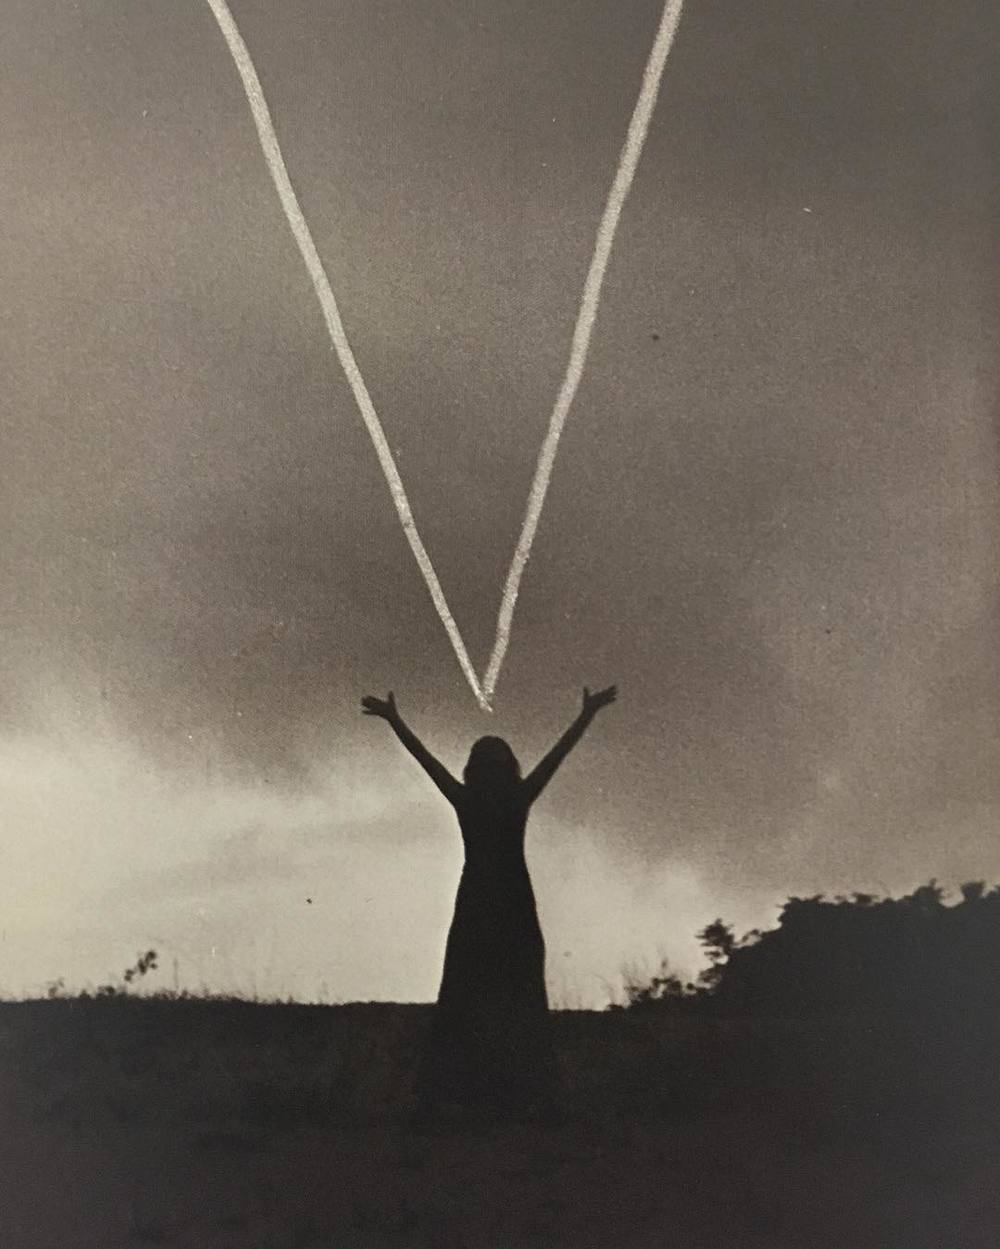 Mary Beth Edelson, Woman Rising, 1974, Outer Banks, North Carolina